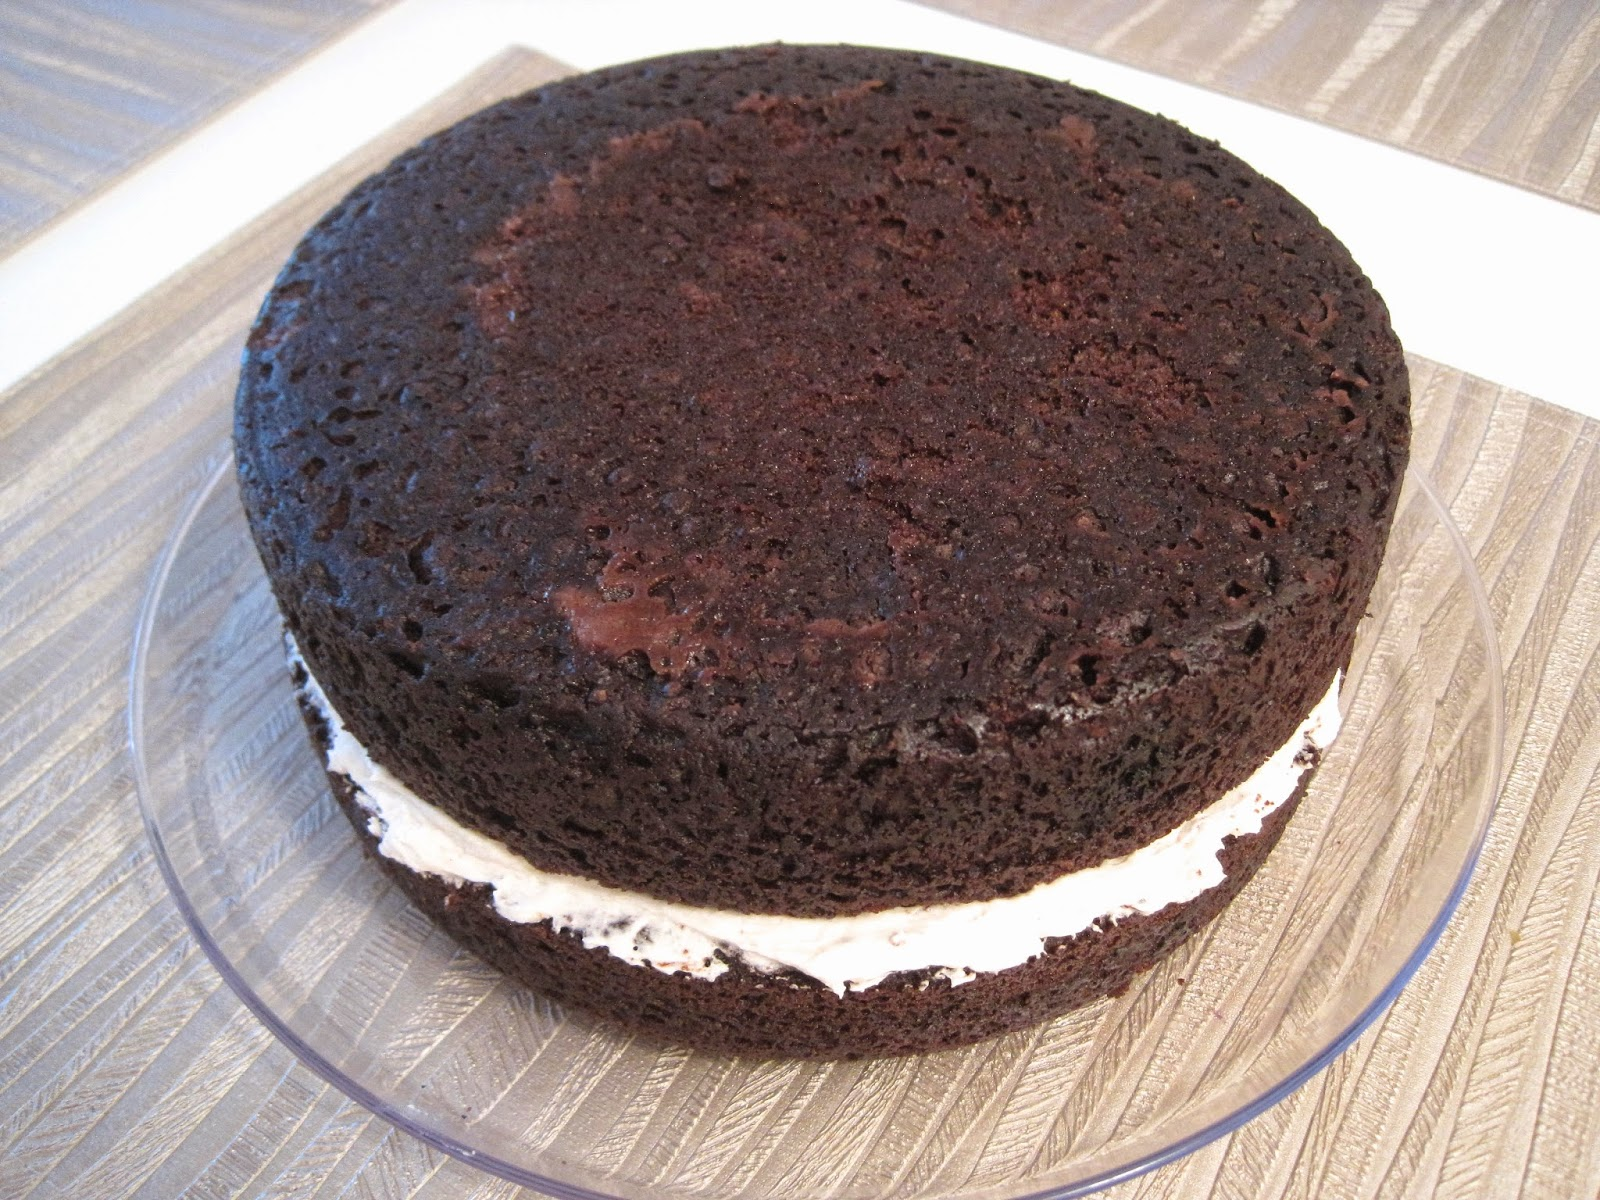 Gluten-Free Vegan Chocolate Cake with Vanilla Frosting Layer Veega Blog